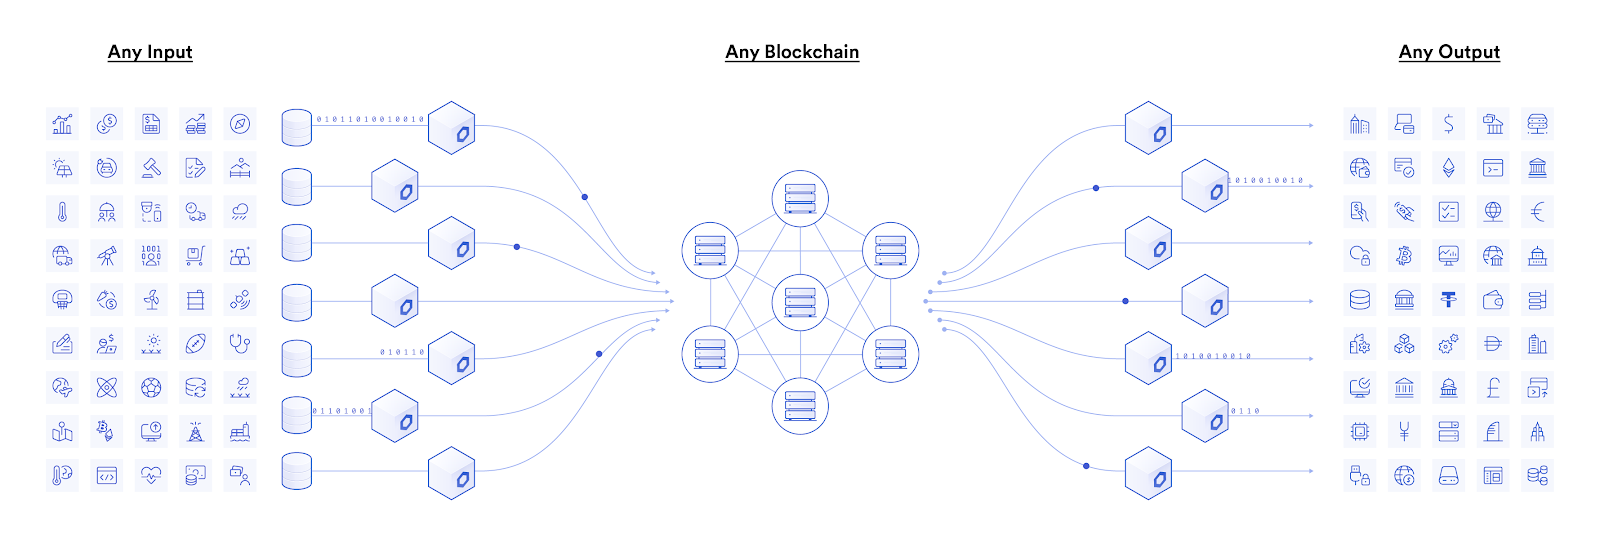 The Chainlink Network